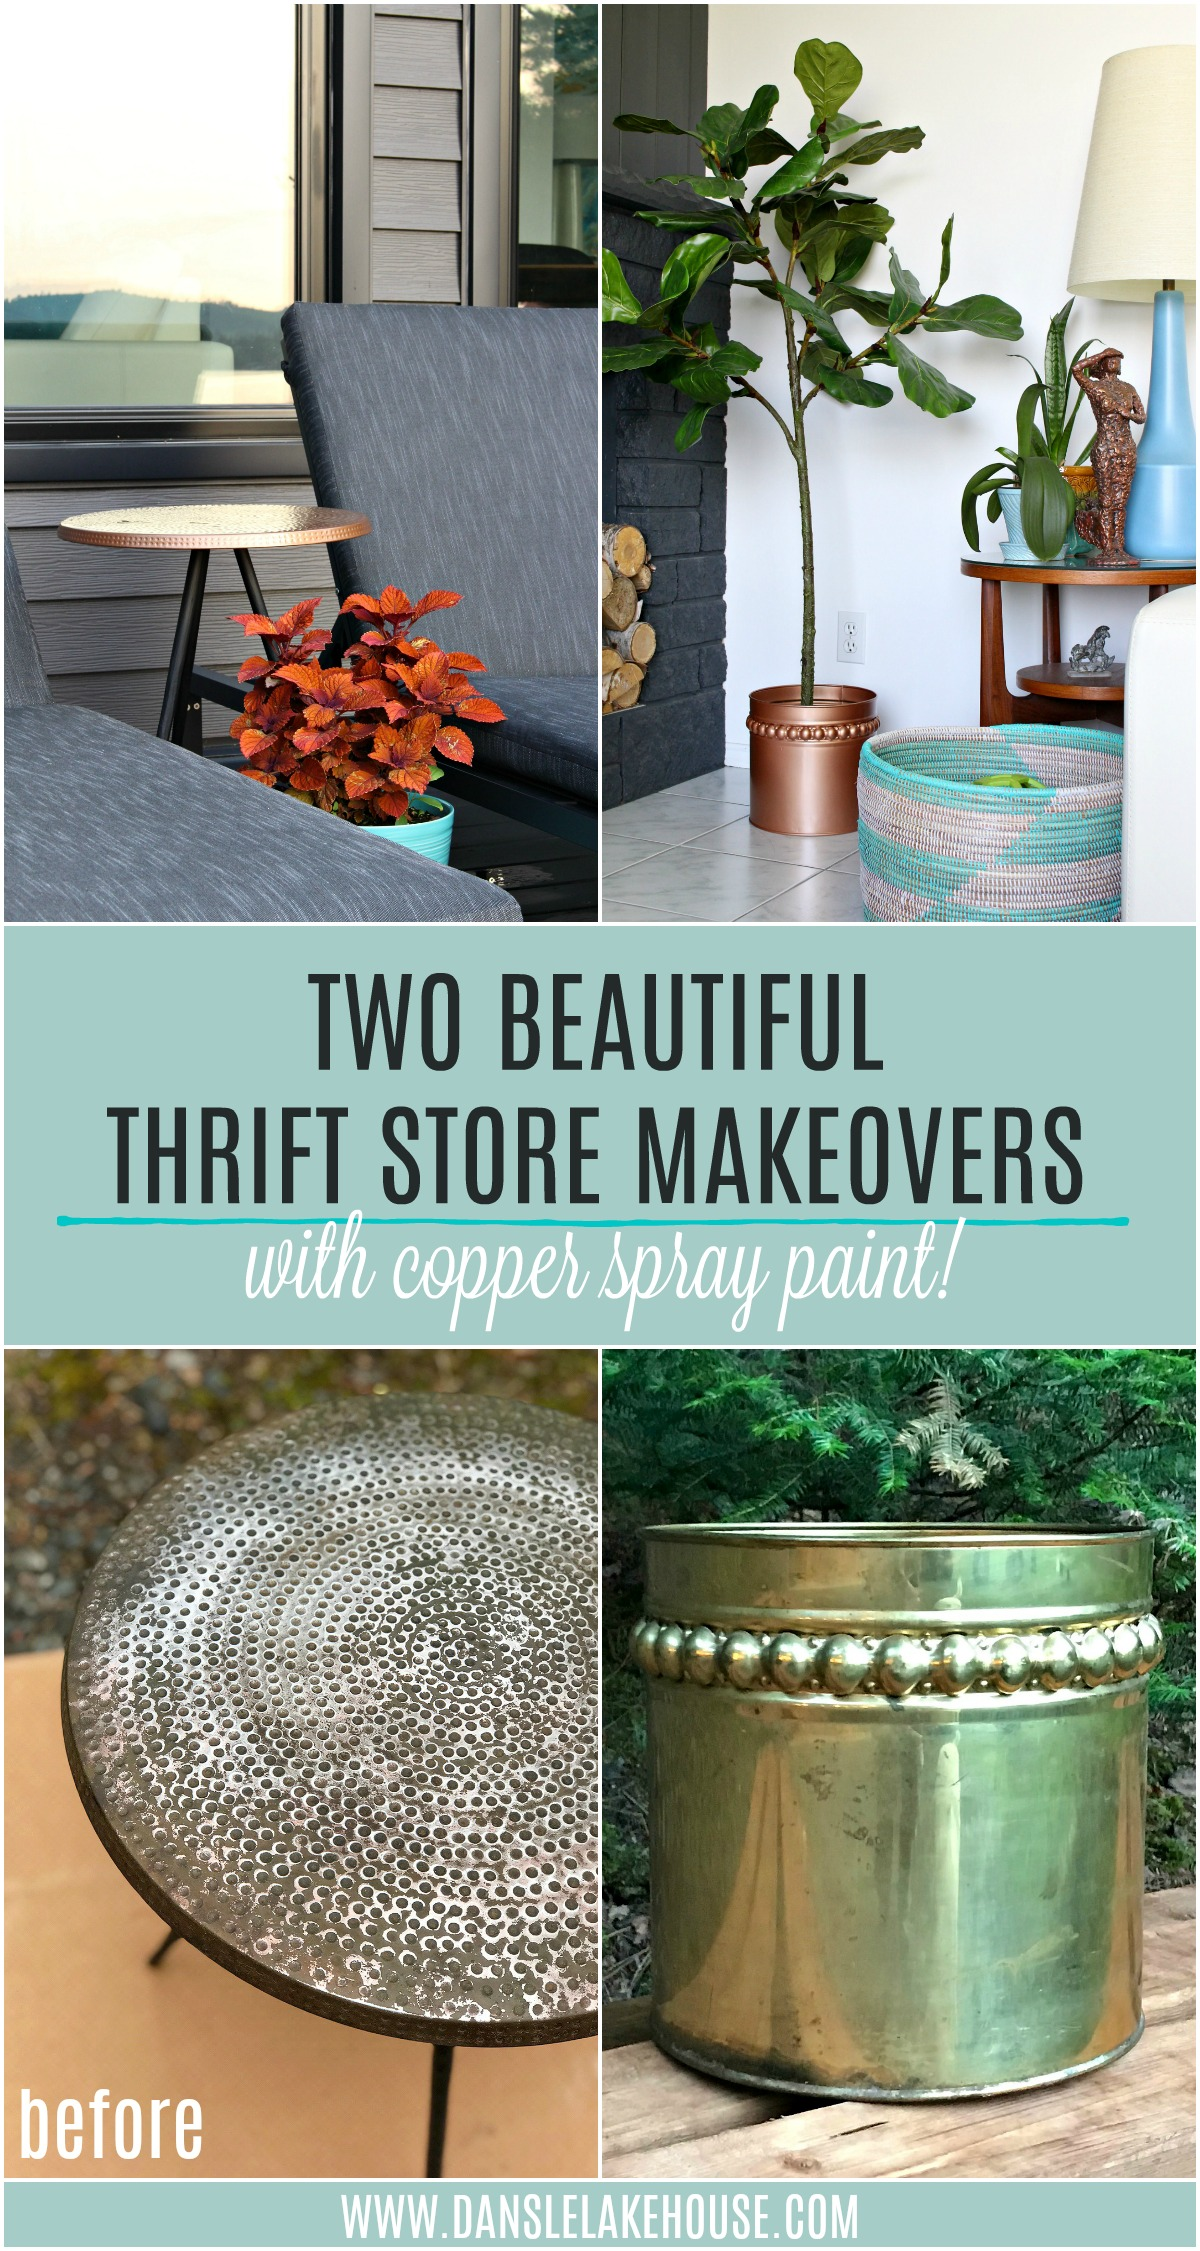 2 Beautiful Thrift Store Upcycle Copper Spray Paint Makeovers | The BEST Copper Spray Paint for Indoor and Outdoor Projects.